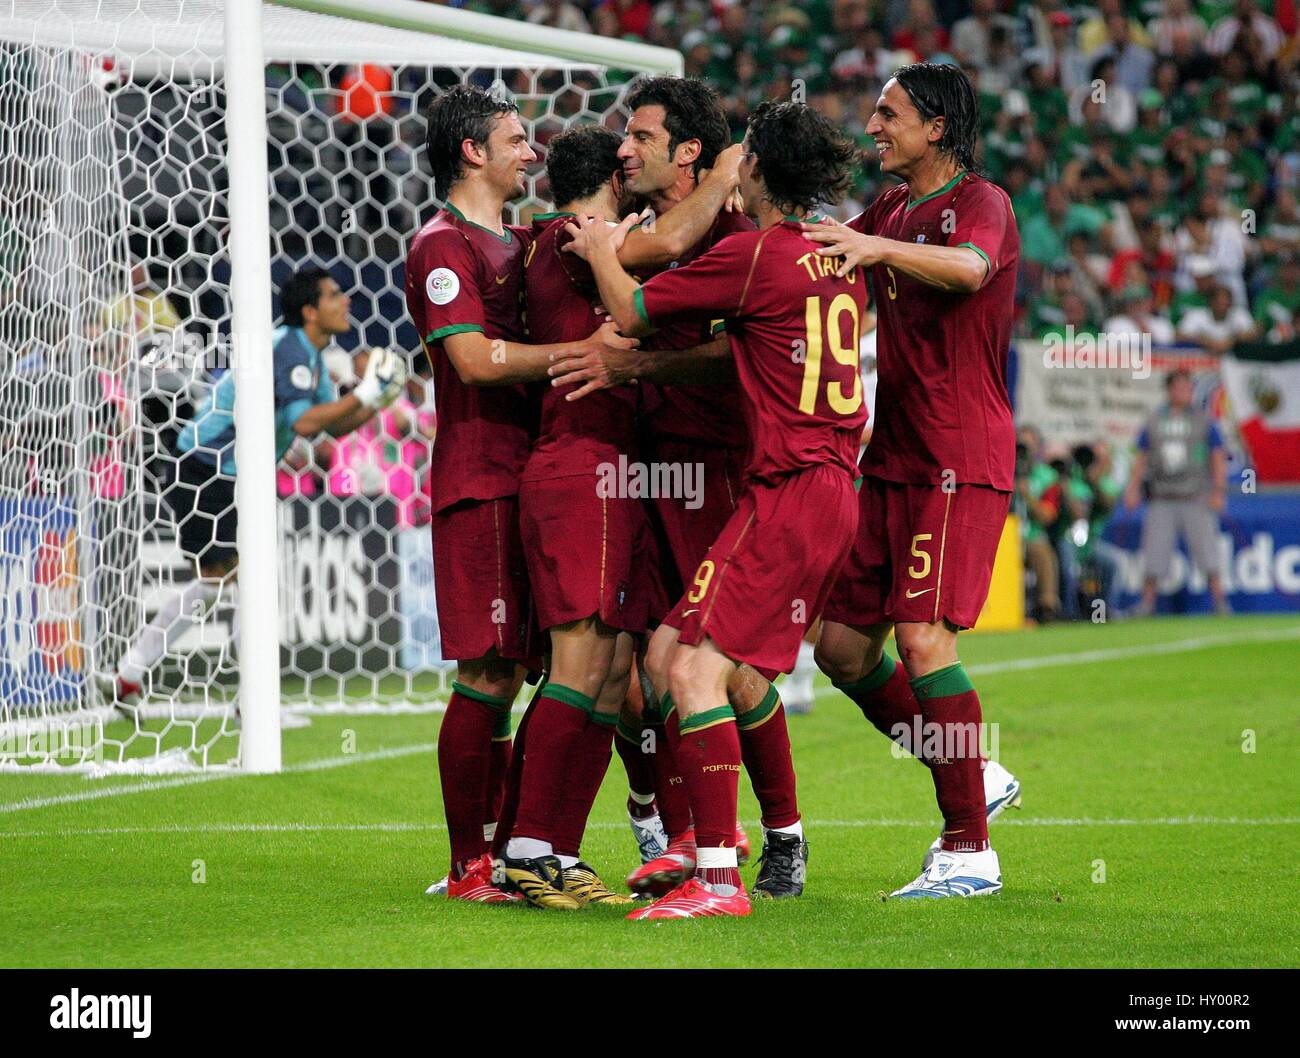 SABROSA SIMAO AND TEAM MATES PORTUGAL V MEXICO GELSENKIRCHEN GERMANY 21 June 2006 - Stock Image